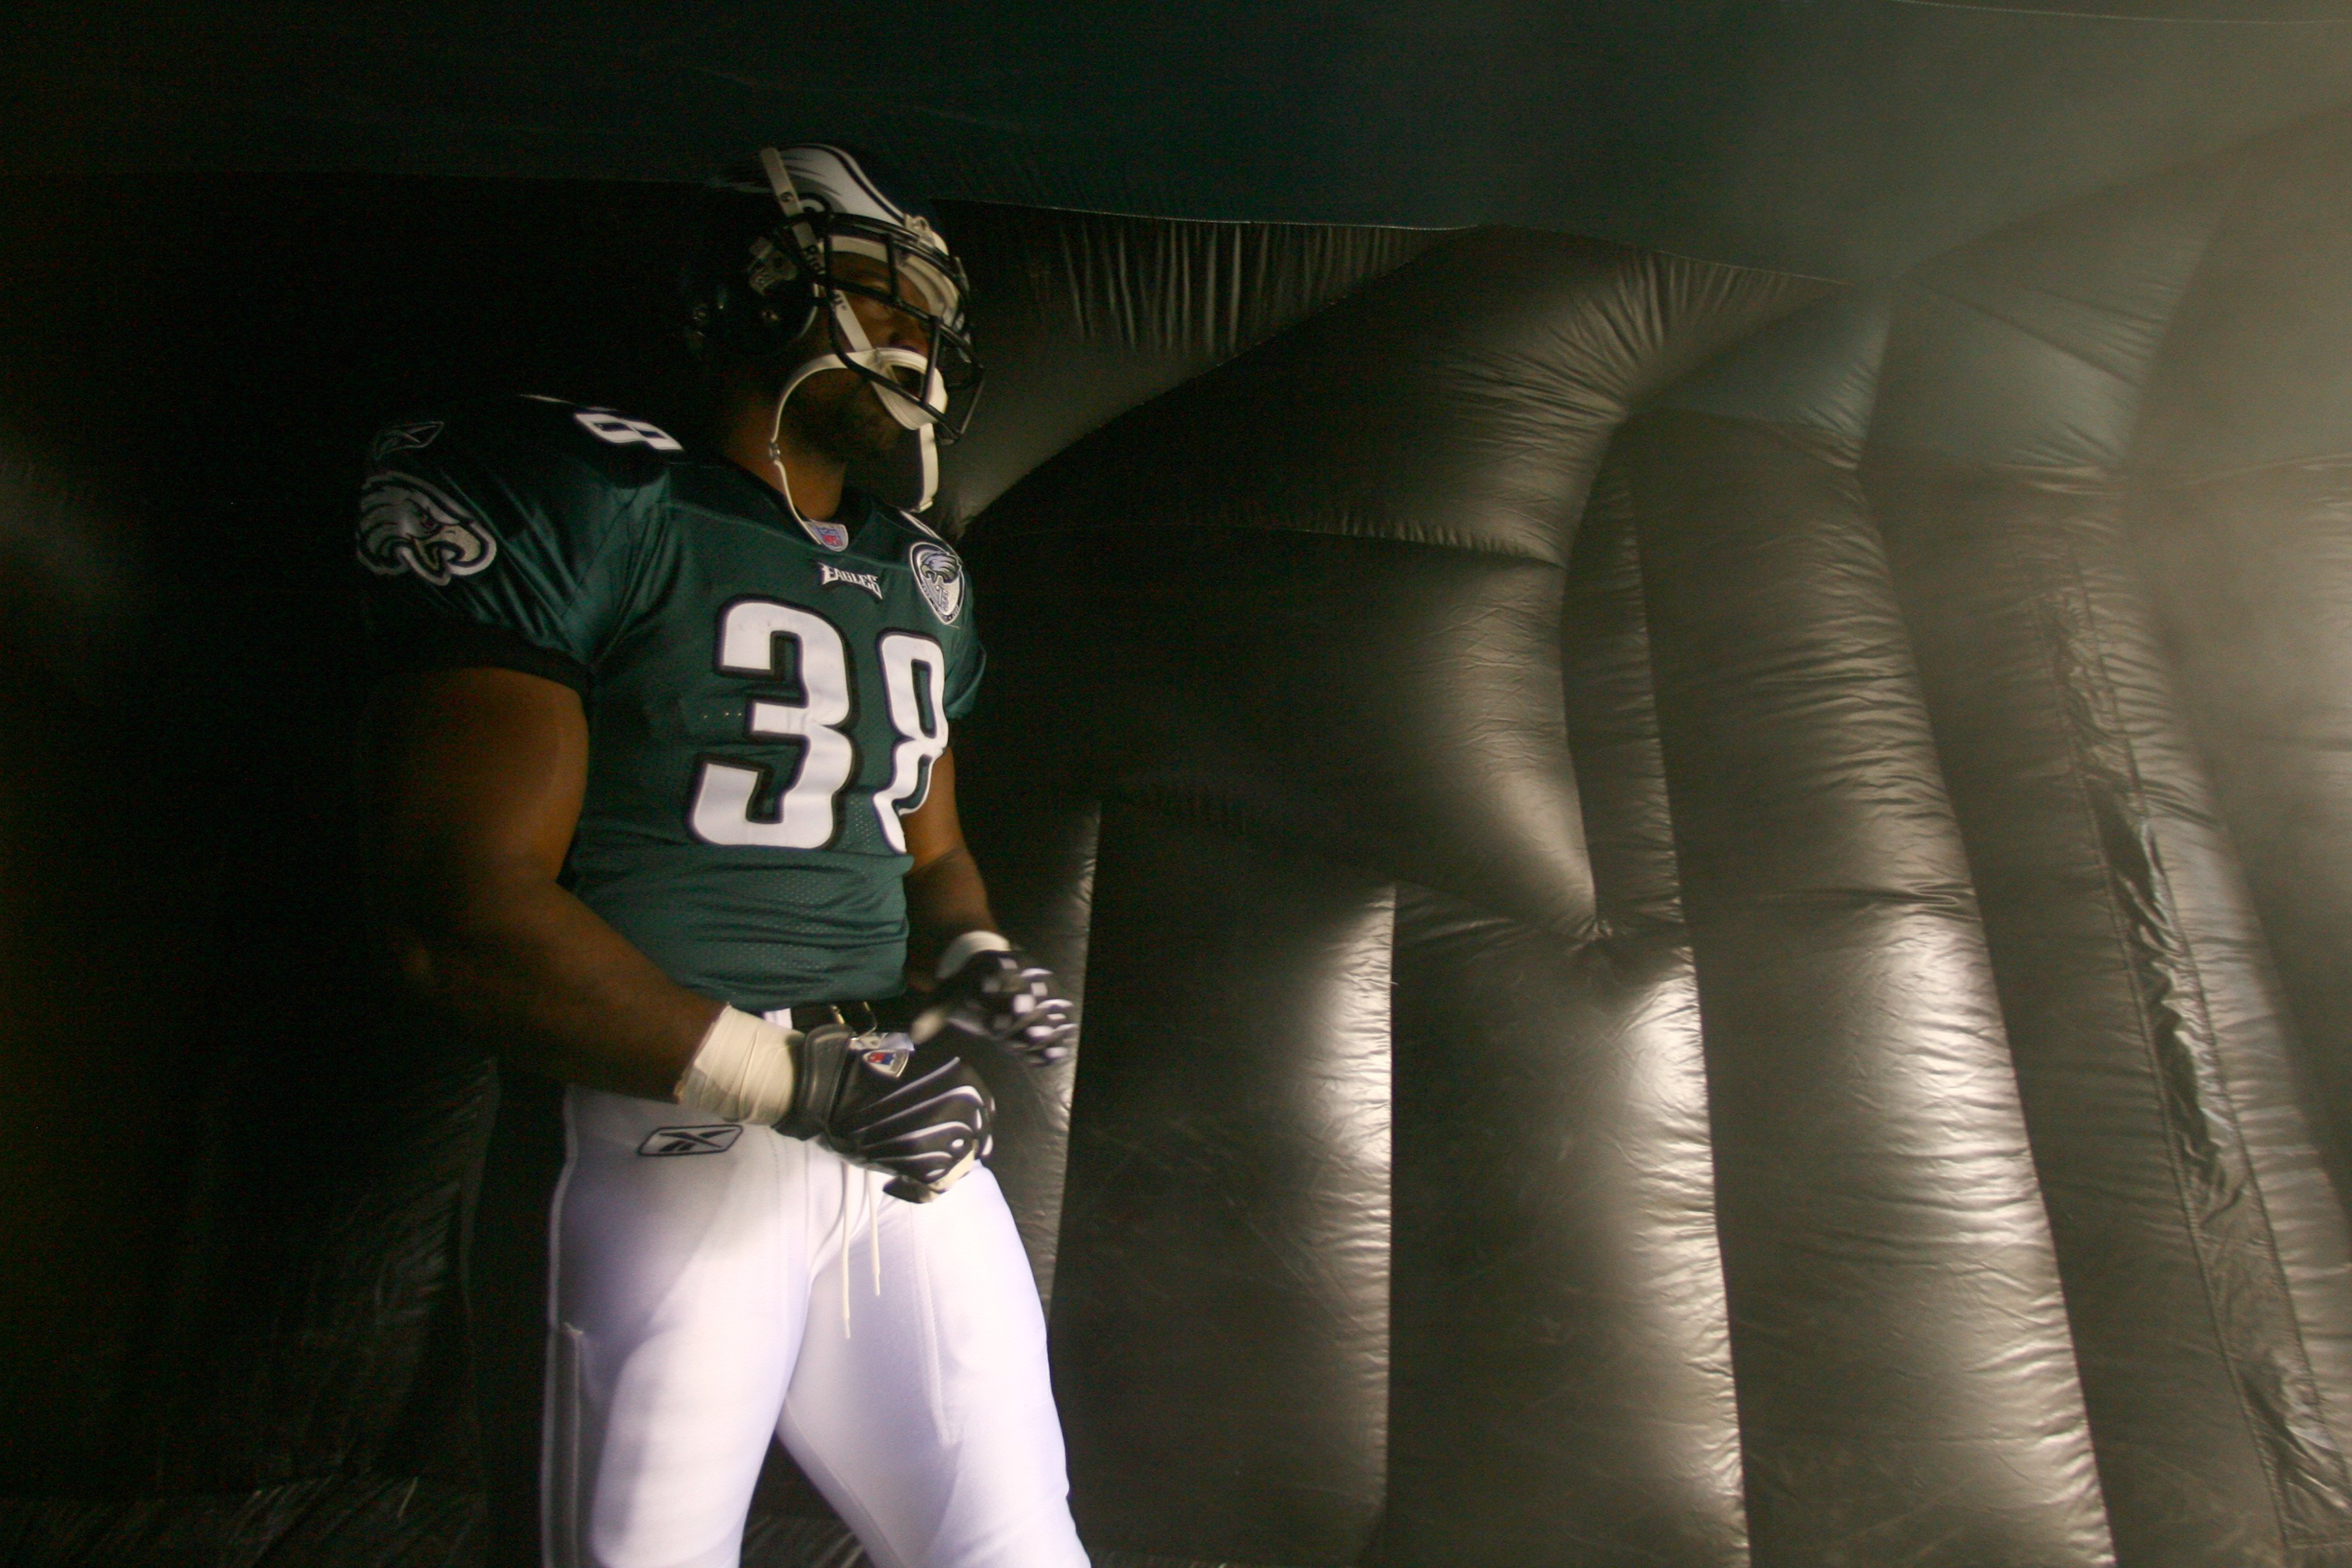 PHILADELPHIA - NOVEMBER 18:  Thomas Tapeh #38 of the Philadelphia Eagles enters the arena during the NFL game against the Miami Dolphins at Lincoln Financial Field on November 18, 2007 in Philadelphia, Pennsylvania. (Photo by Al Bello/Getty Images)